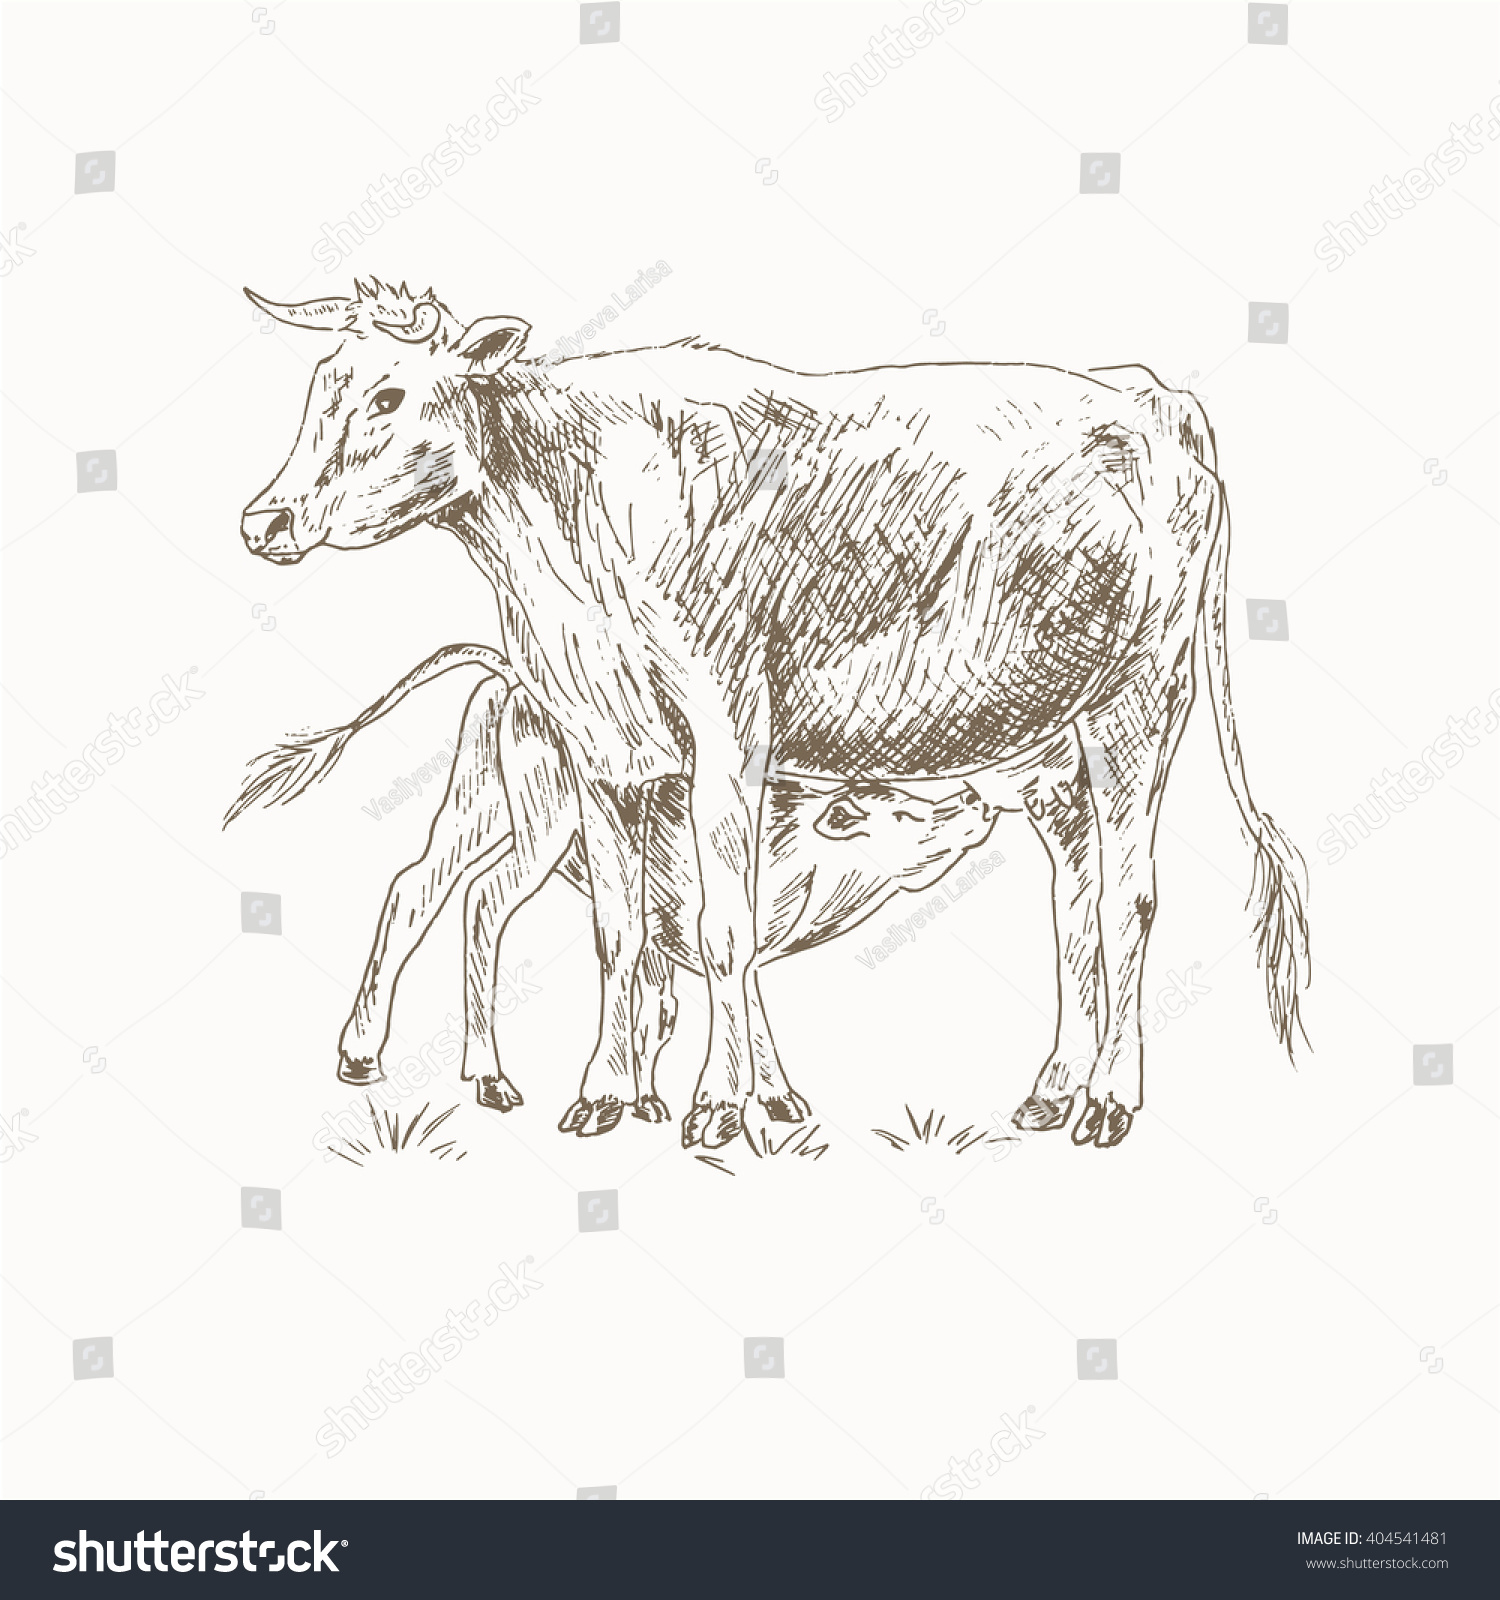 Cow Feeding Calf Sketch Mom Baby Stock Vector Shutterstock - Mother takes amazing pictures ever children animals farm